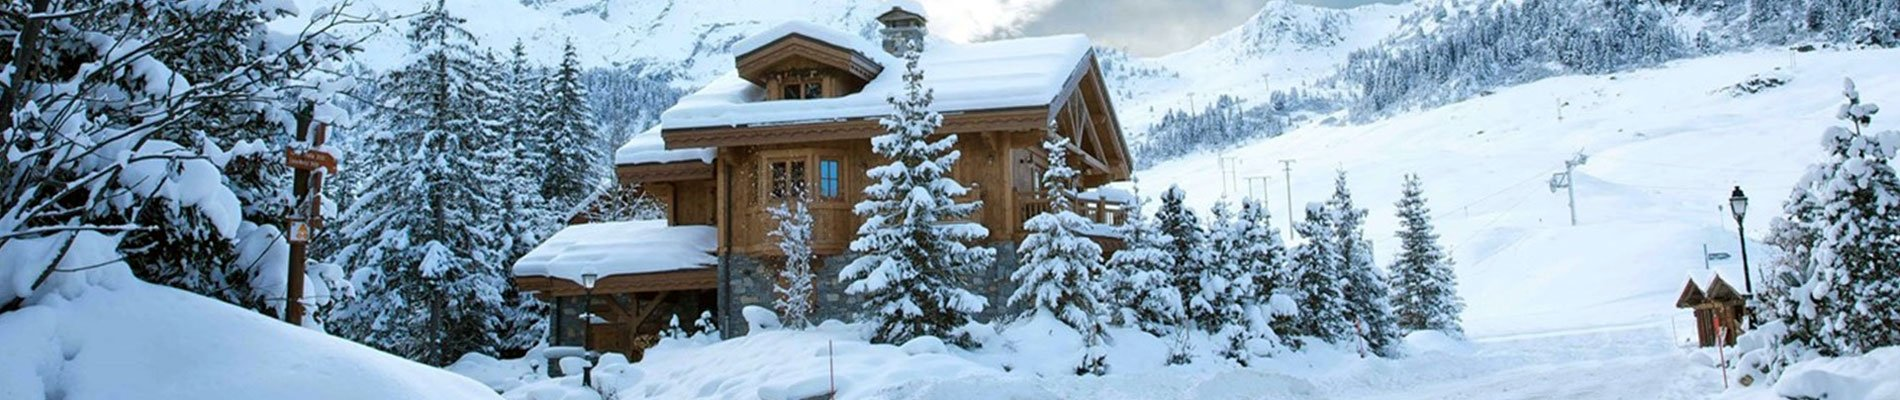 portetta-courchevel-lodges-en-lofts